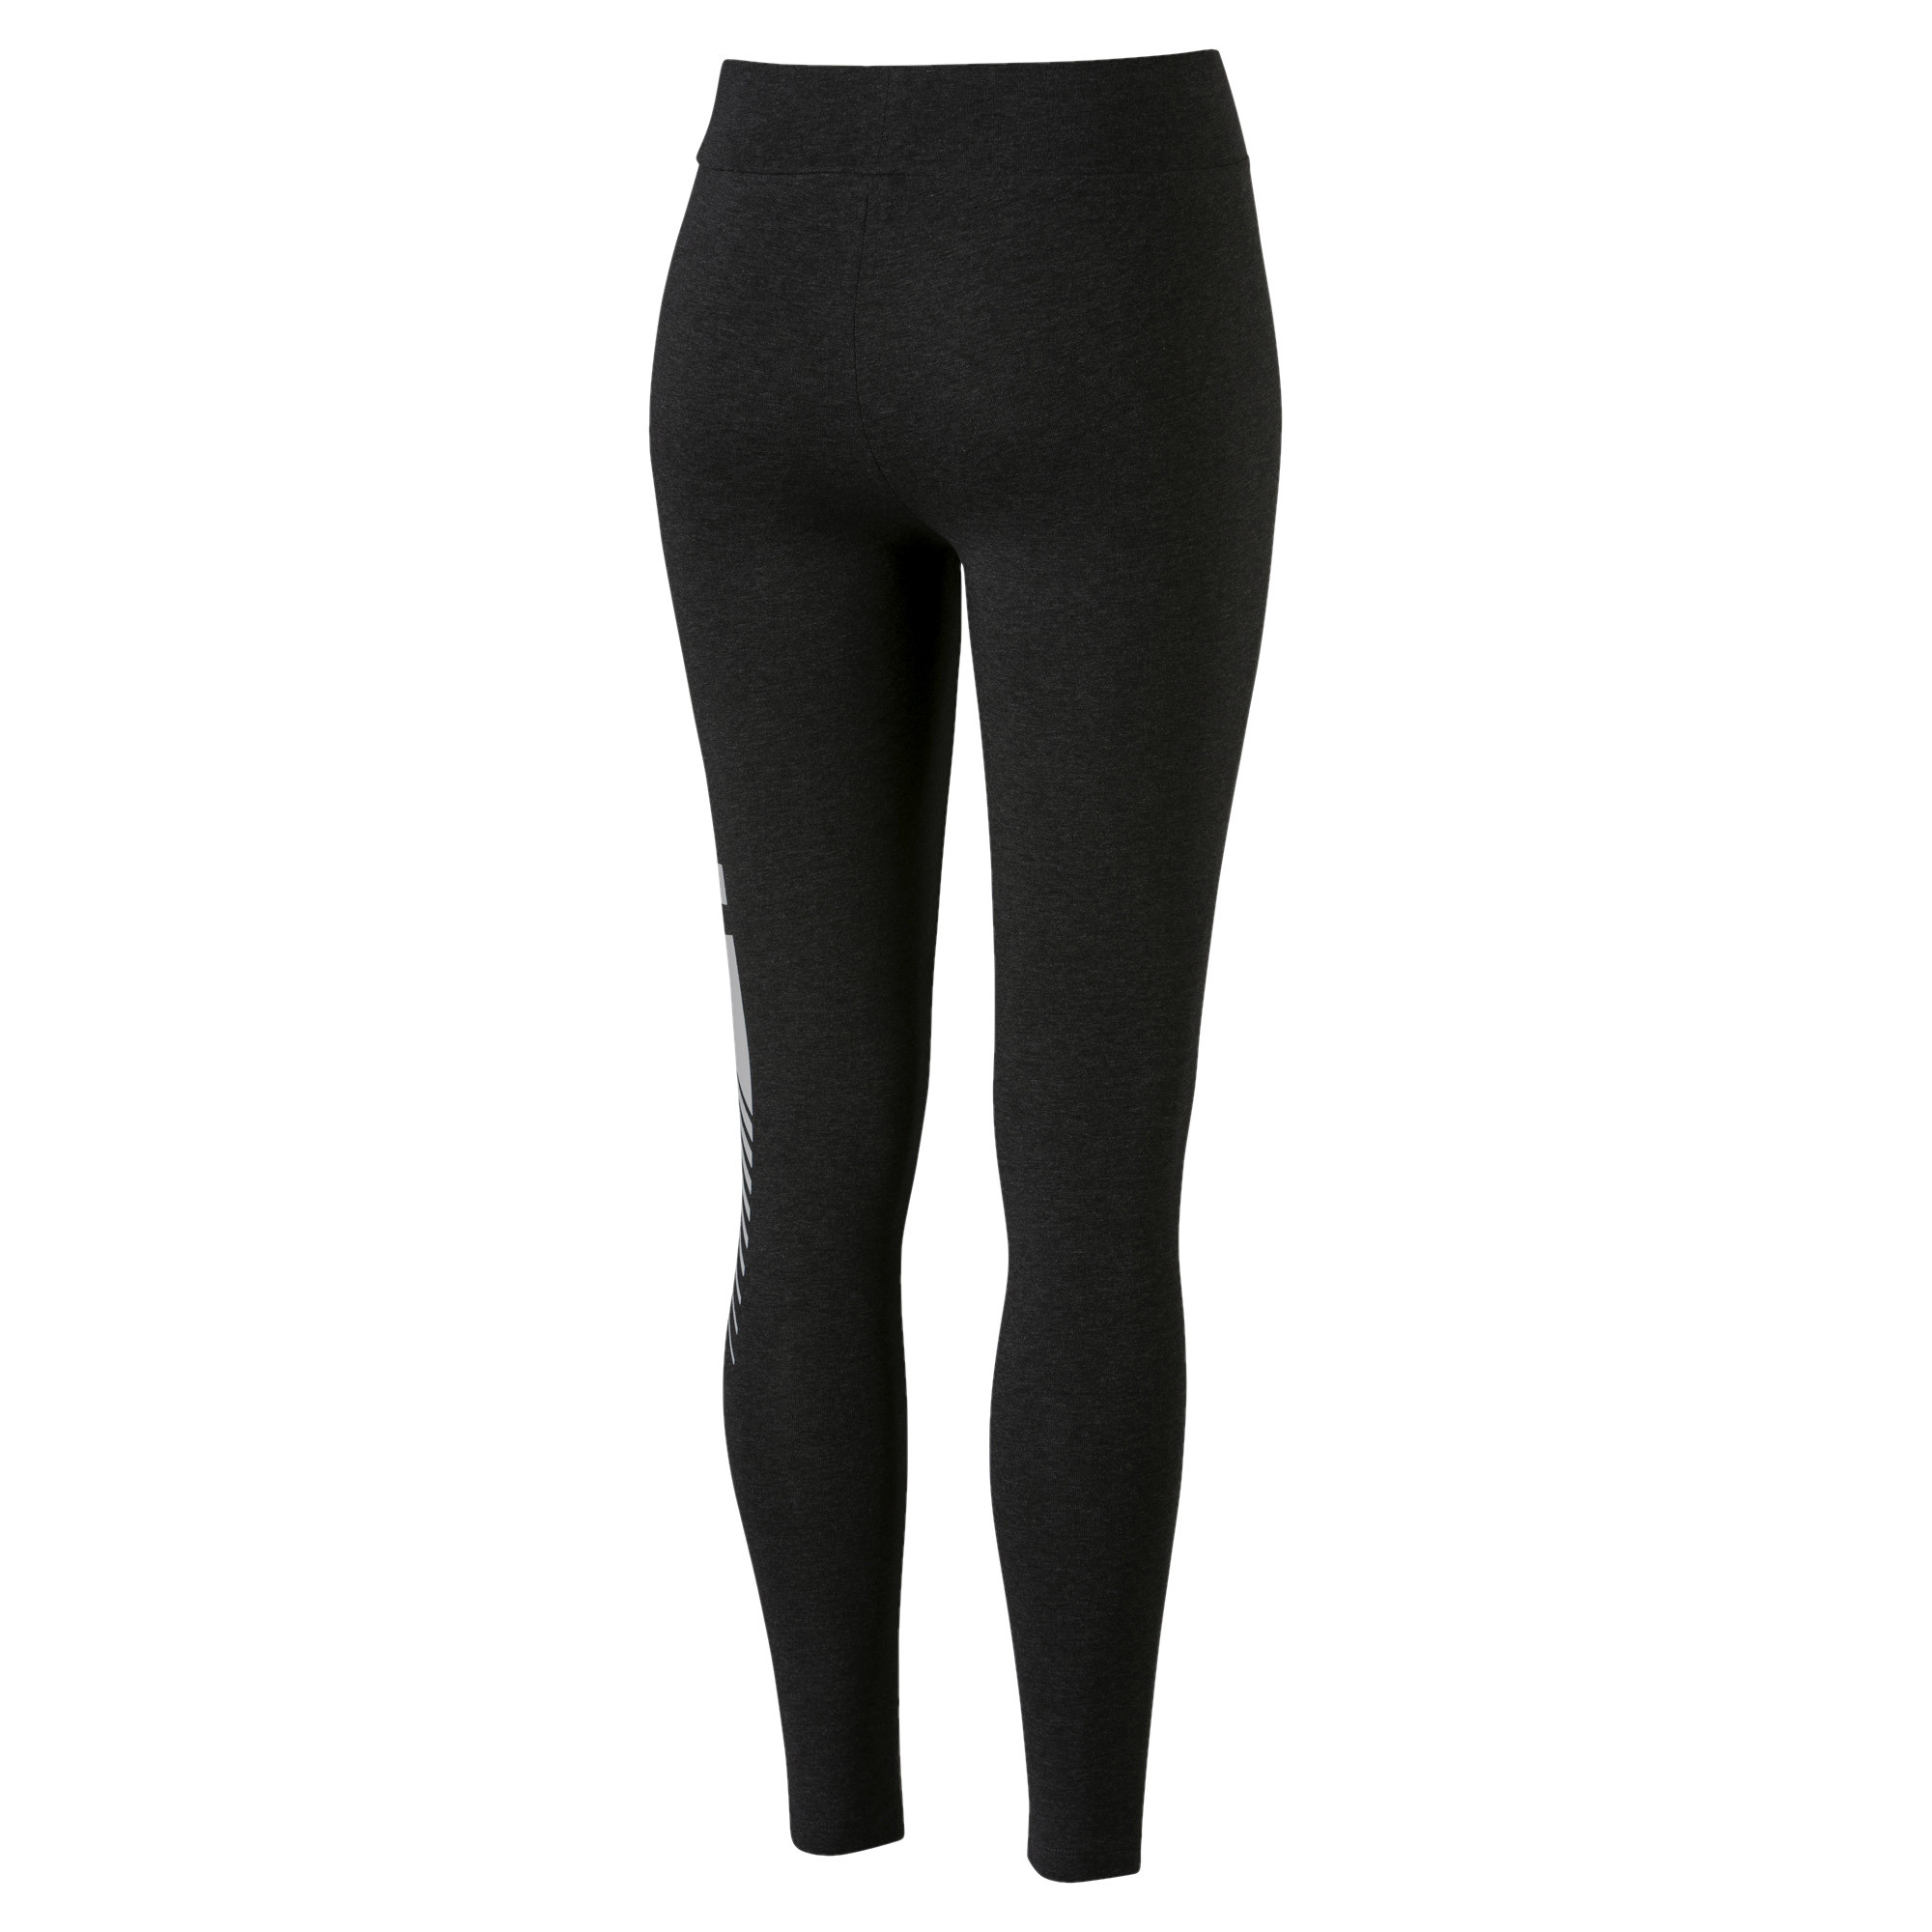 Details about PUMA Essential Graphic Women's Leggings Basics